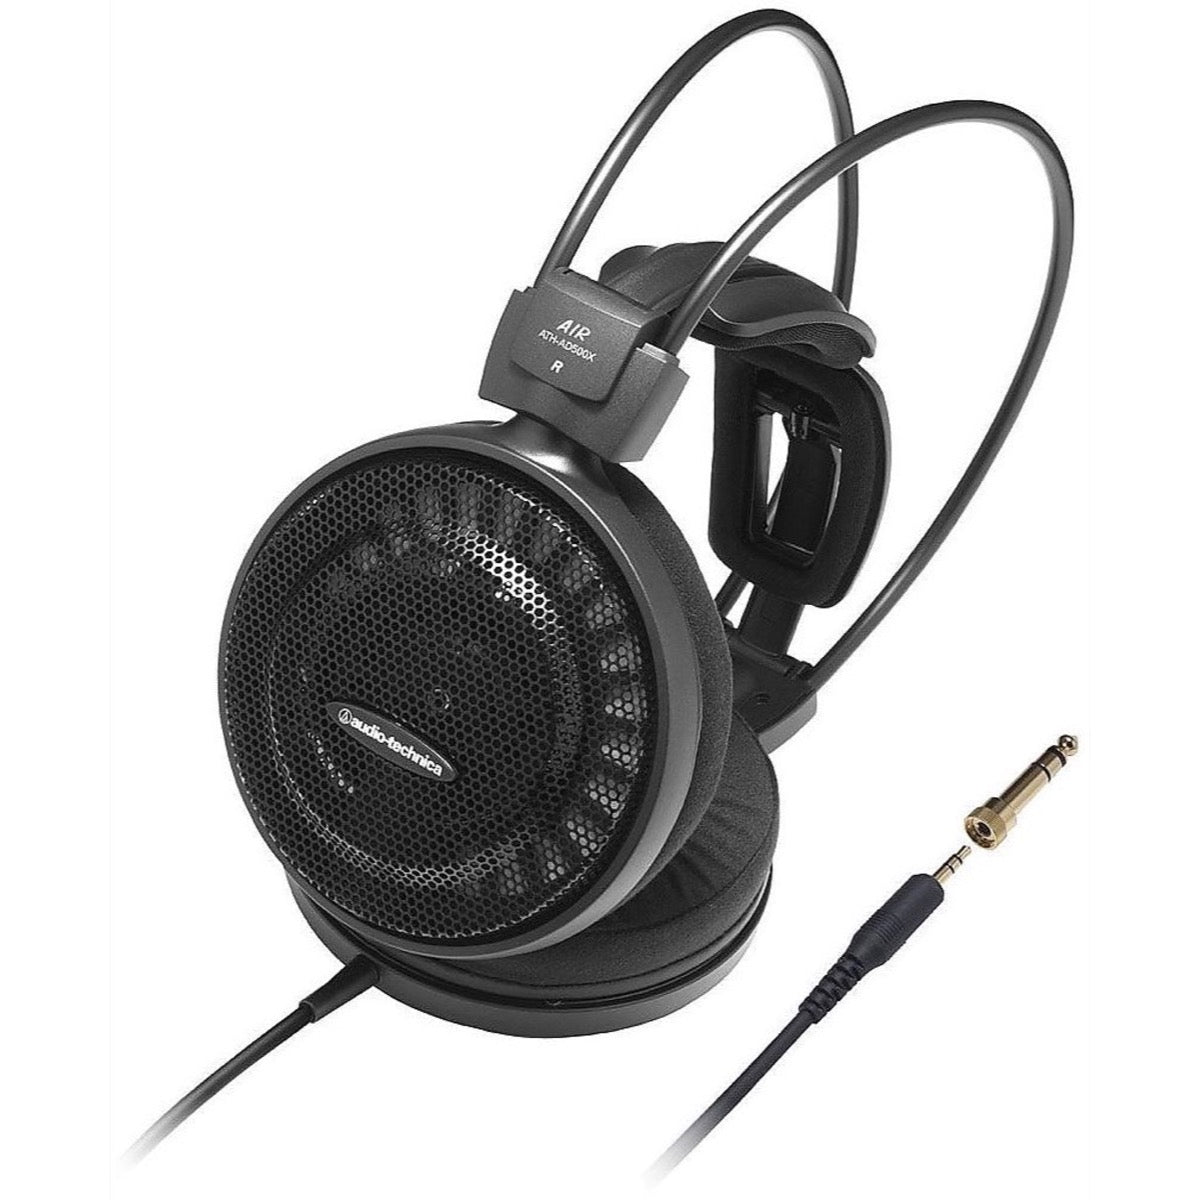 Audio-Technica ATH-AD500X Open Back Headphones